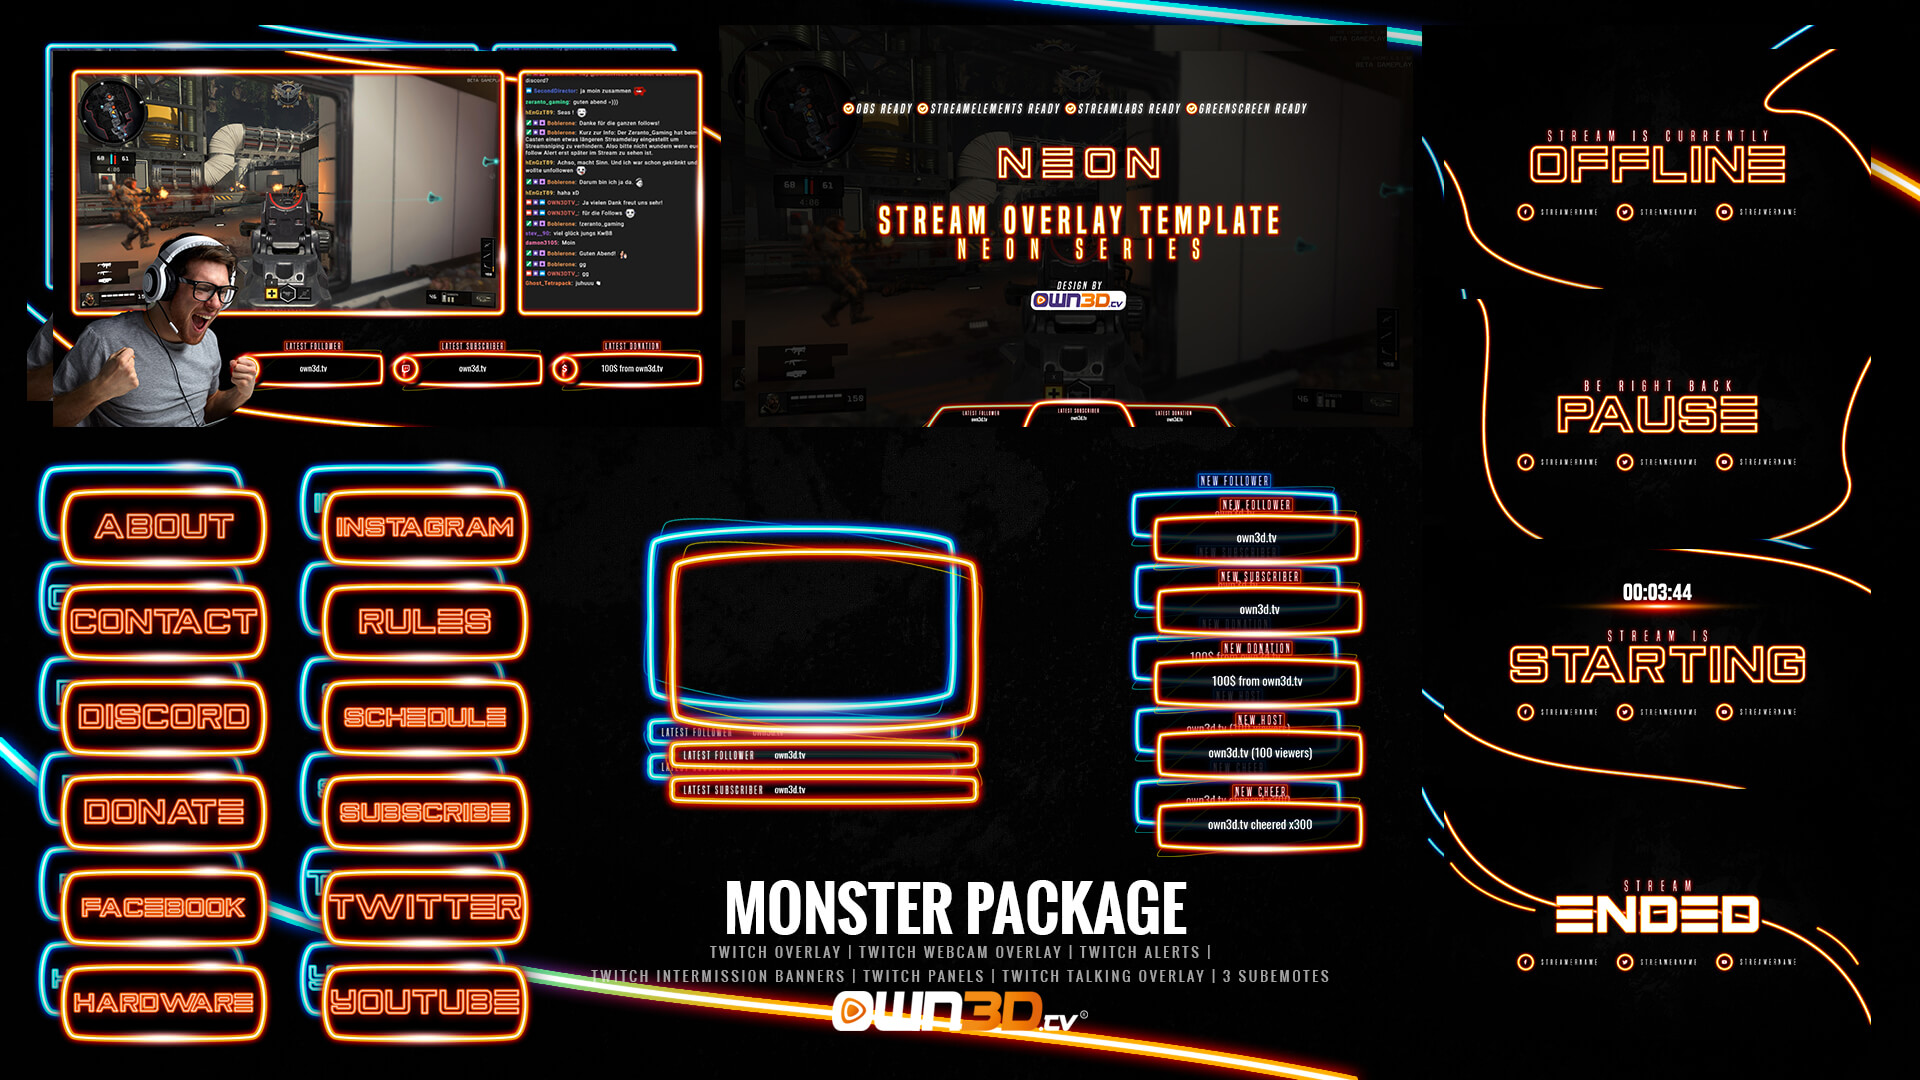 neon-series-twitch-overlay-package-03-monster.jpg